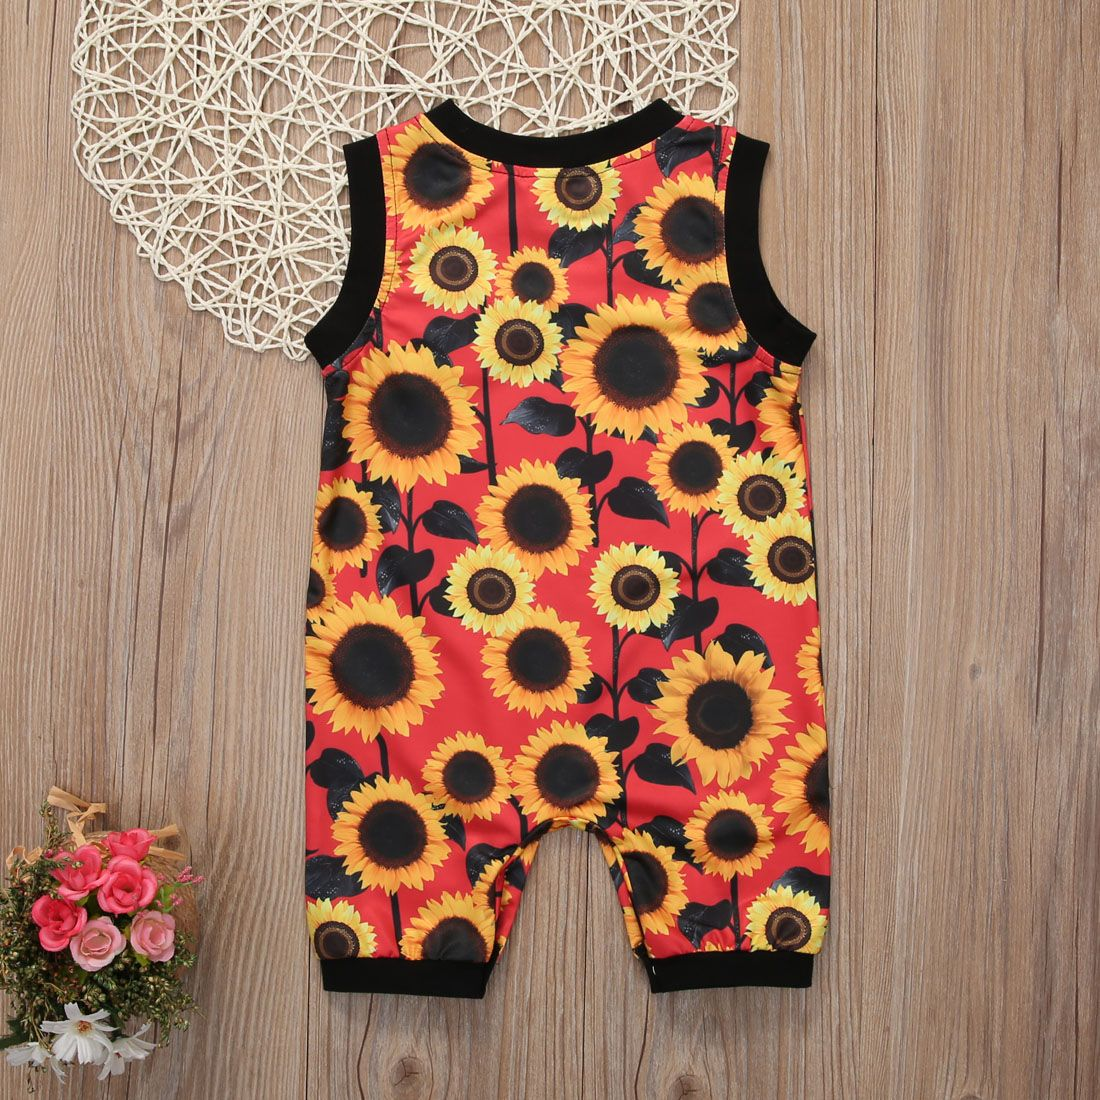 c24e5b616fe16 Sunny Sunflower Romper | Baby Rompers and Toddler Clothing | Baby ...